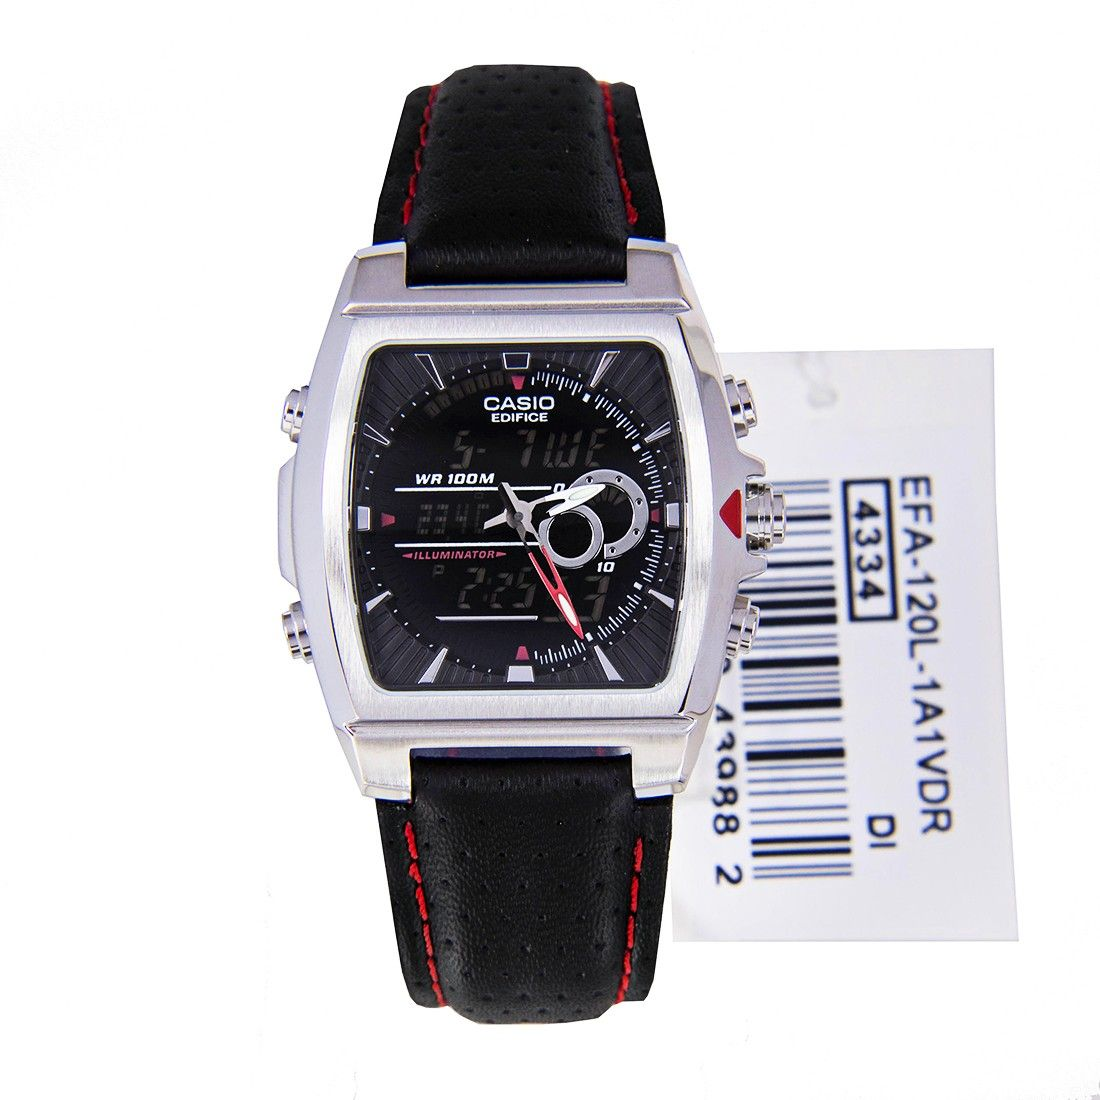 simons shop watch canada accessories for active online in men mens en a watches signatur stylish